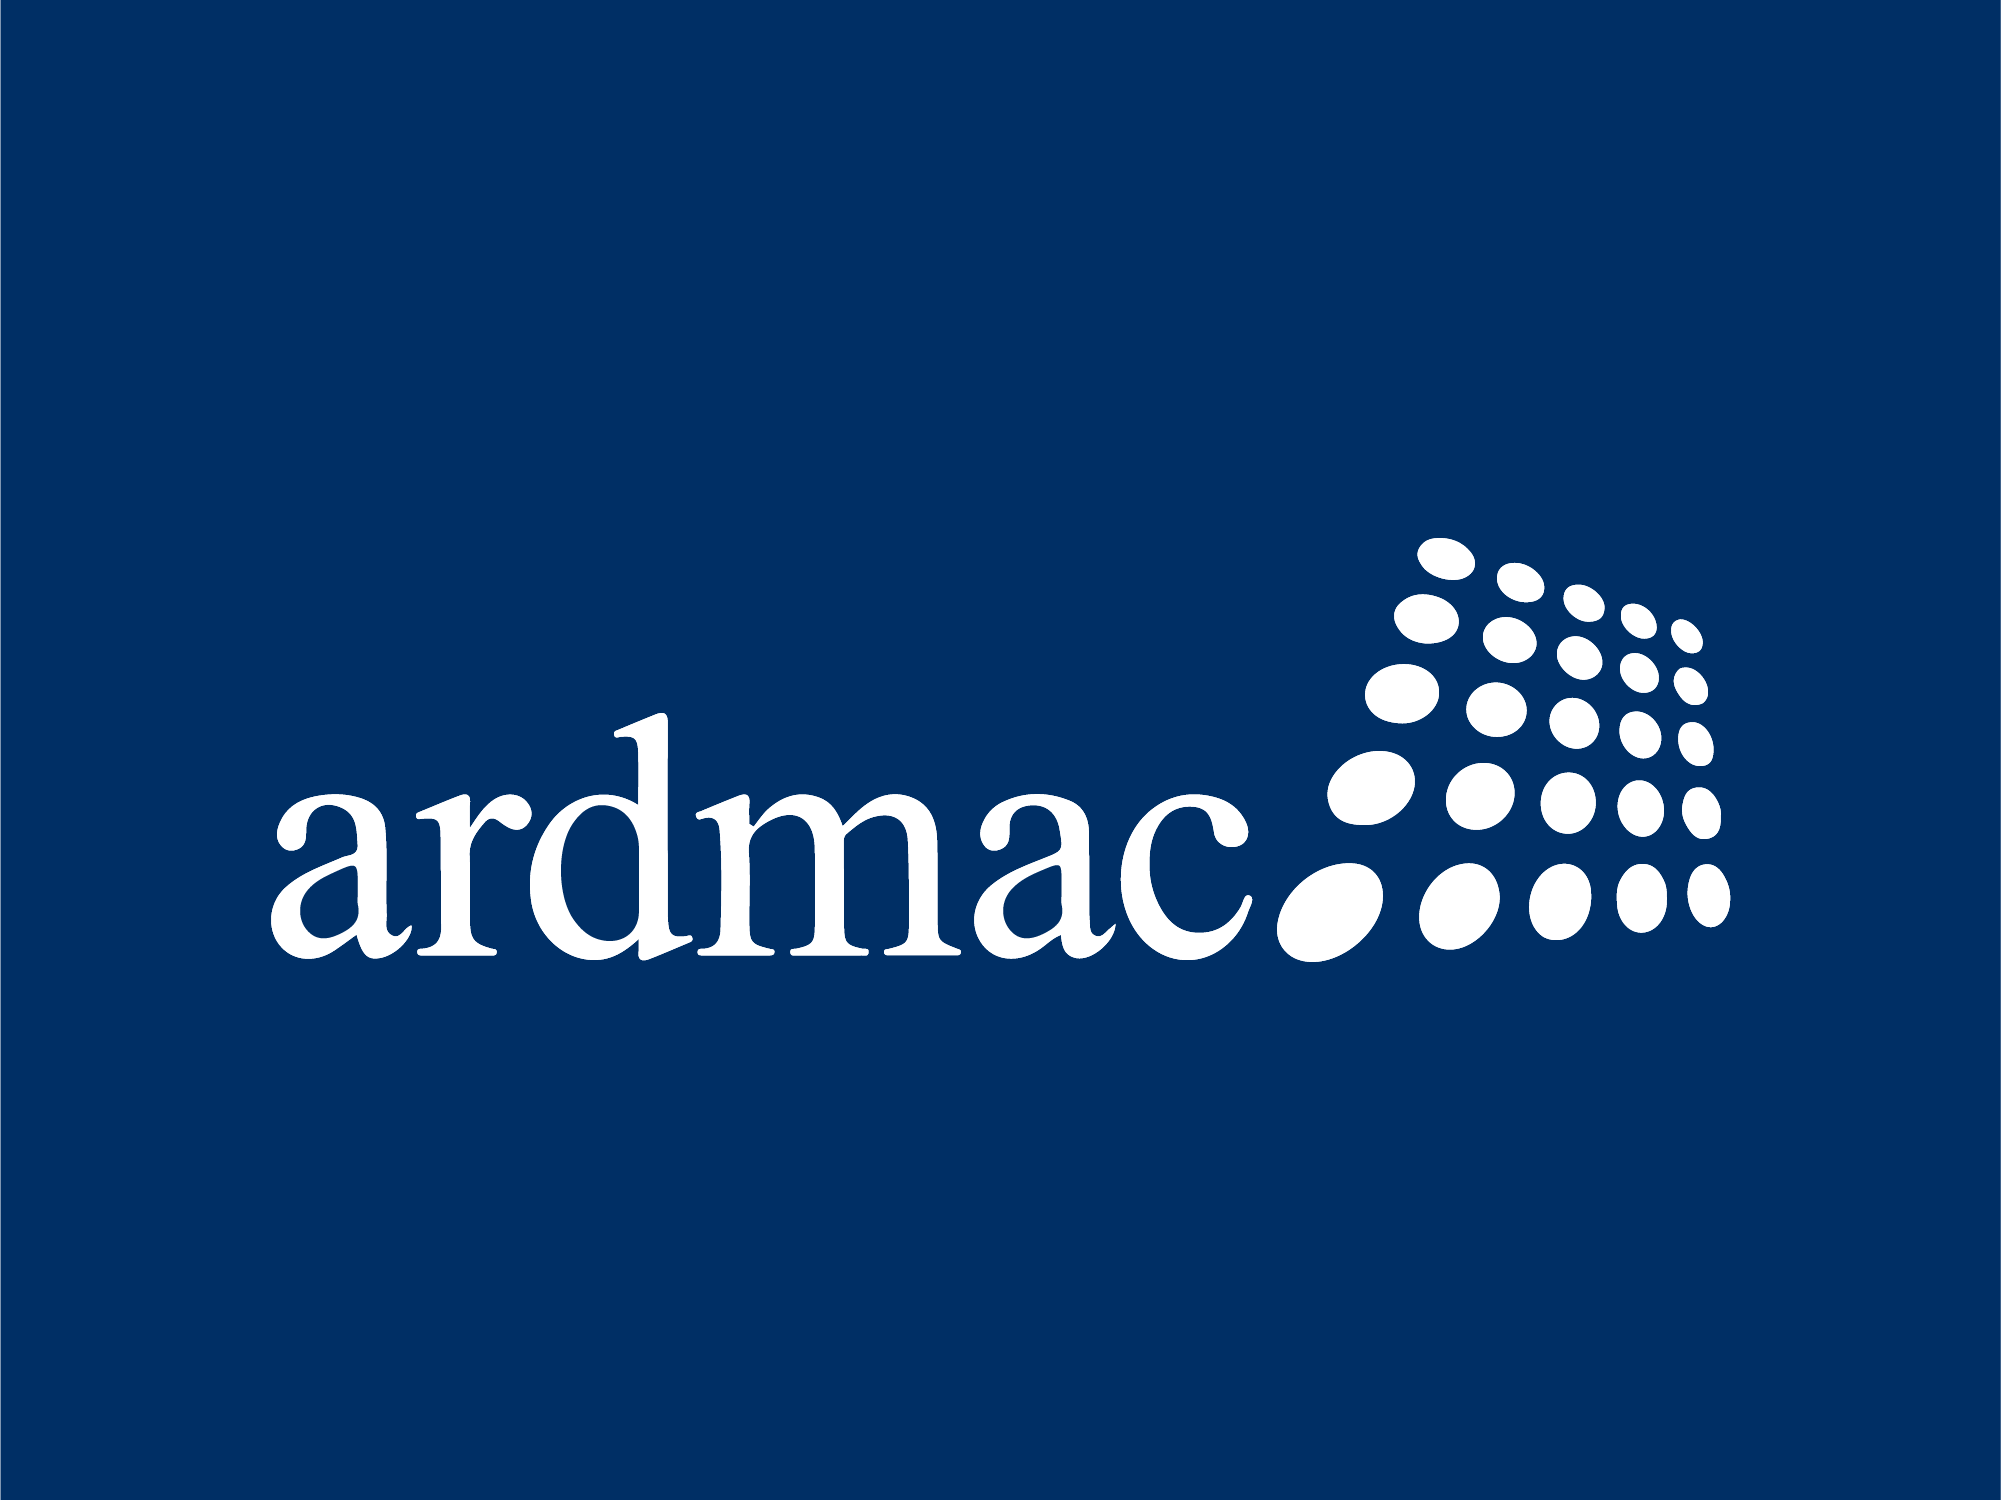 Ardmac - Advised MBO Team on the acquisition and funding of Ardmac